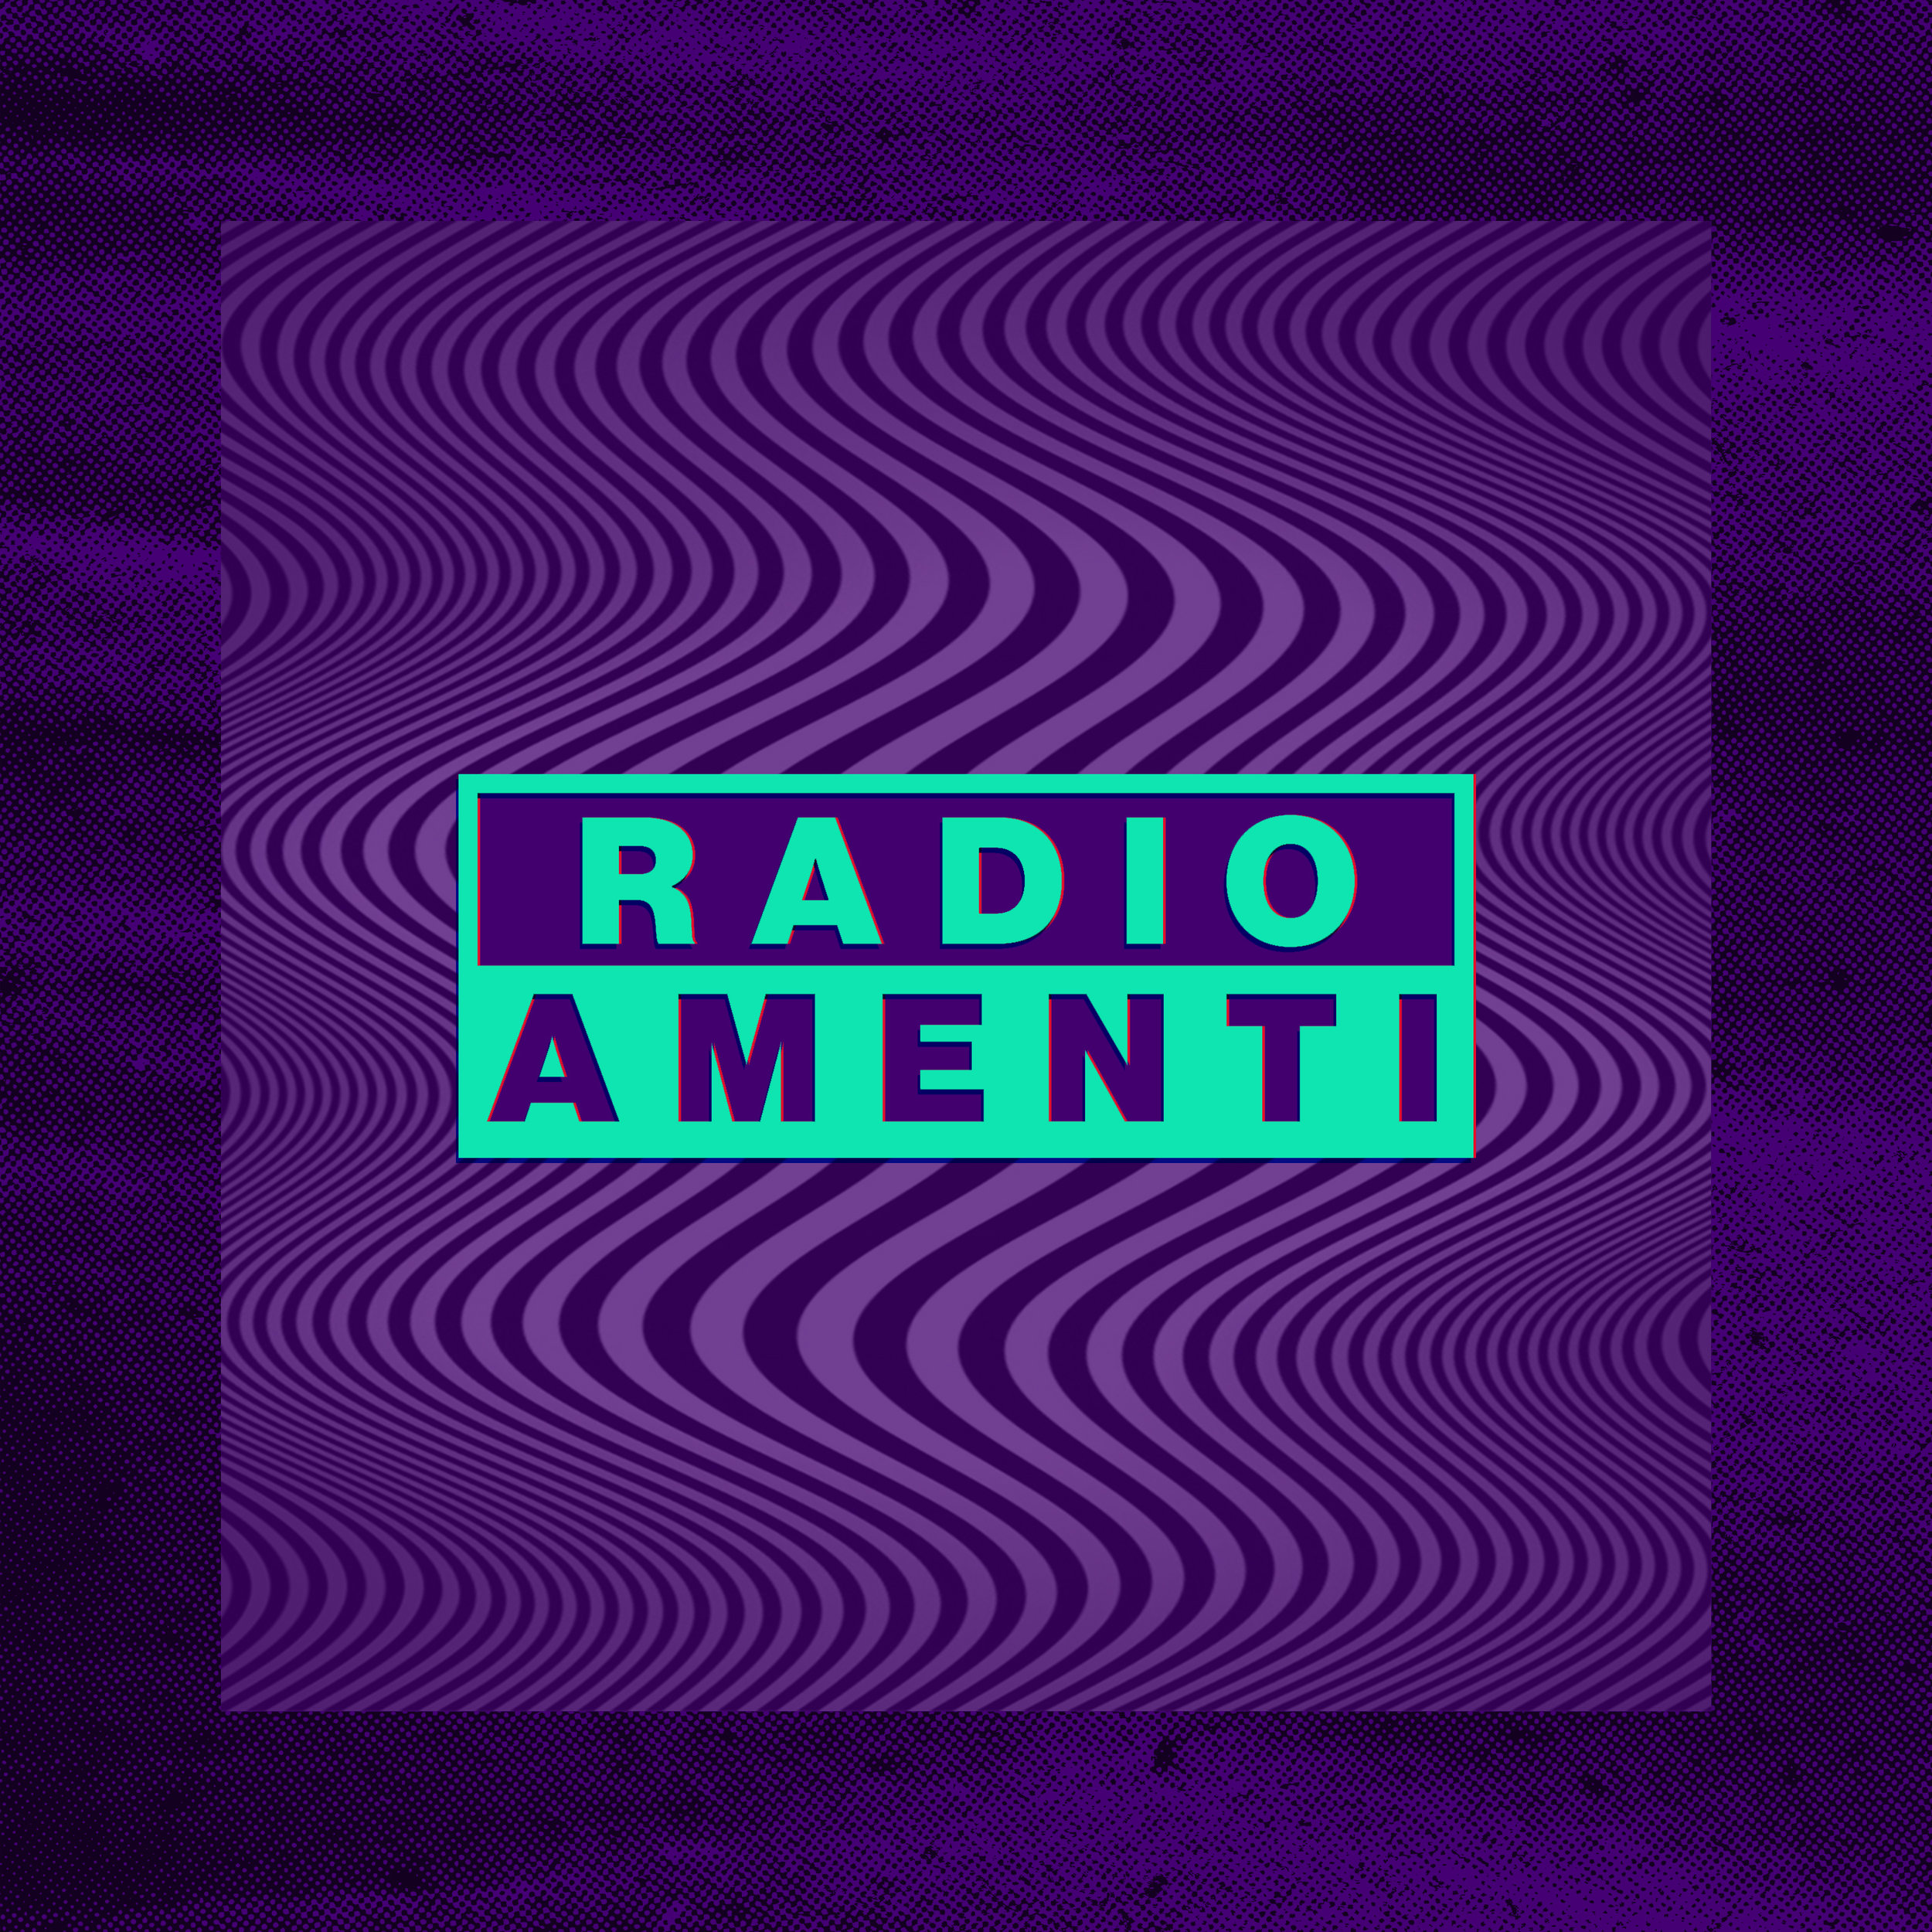 THE RADIO AMENTI PODCAST  - LAUNCHES ON 10/10/2019